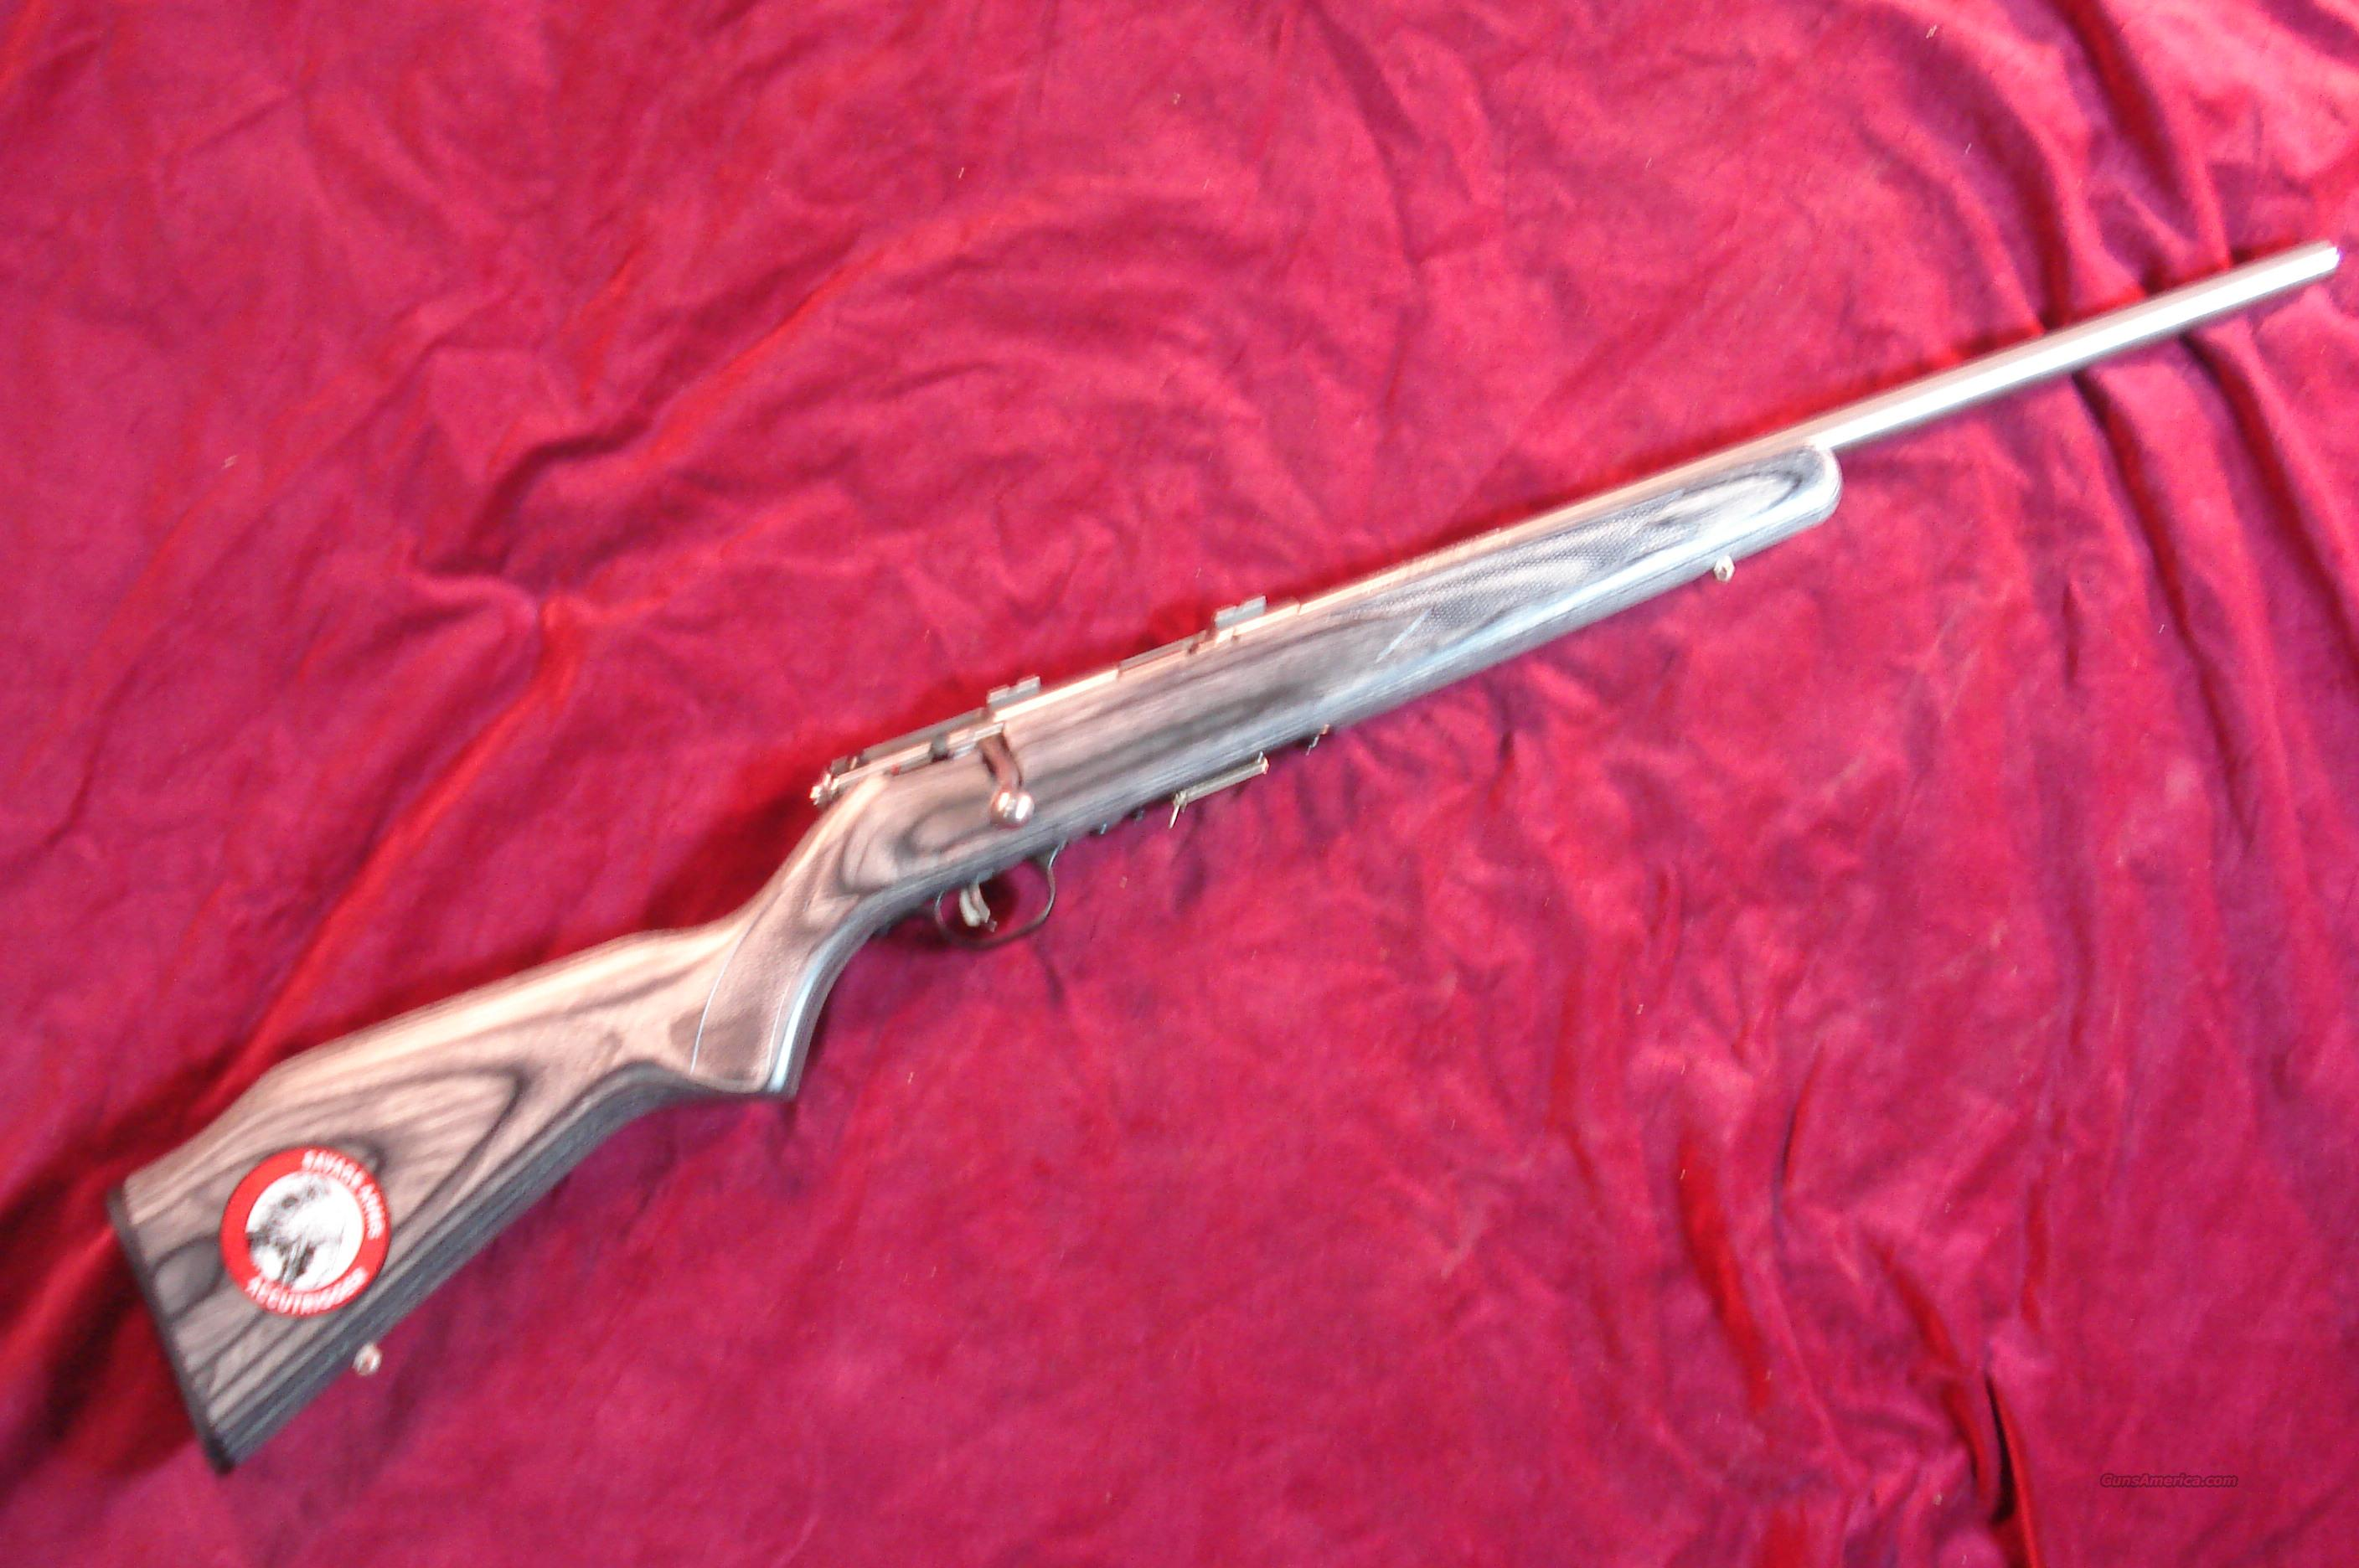 SAVAGE 17HMR STAINLESS GREY LAMINATE  NEW (93R17BVSS)  Guns > Rifles > Savage Rifles > Accutrigger Models > Sporting